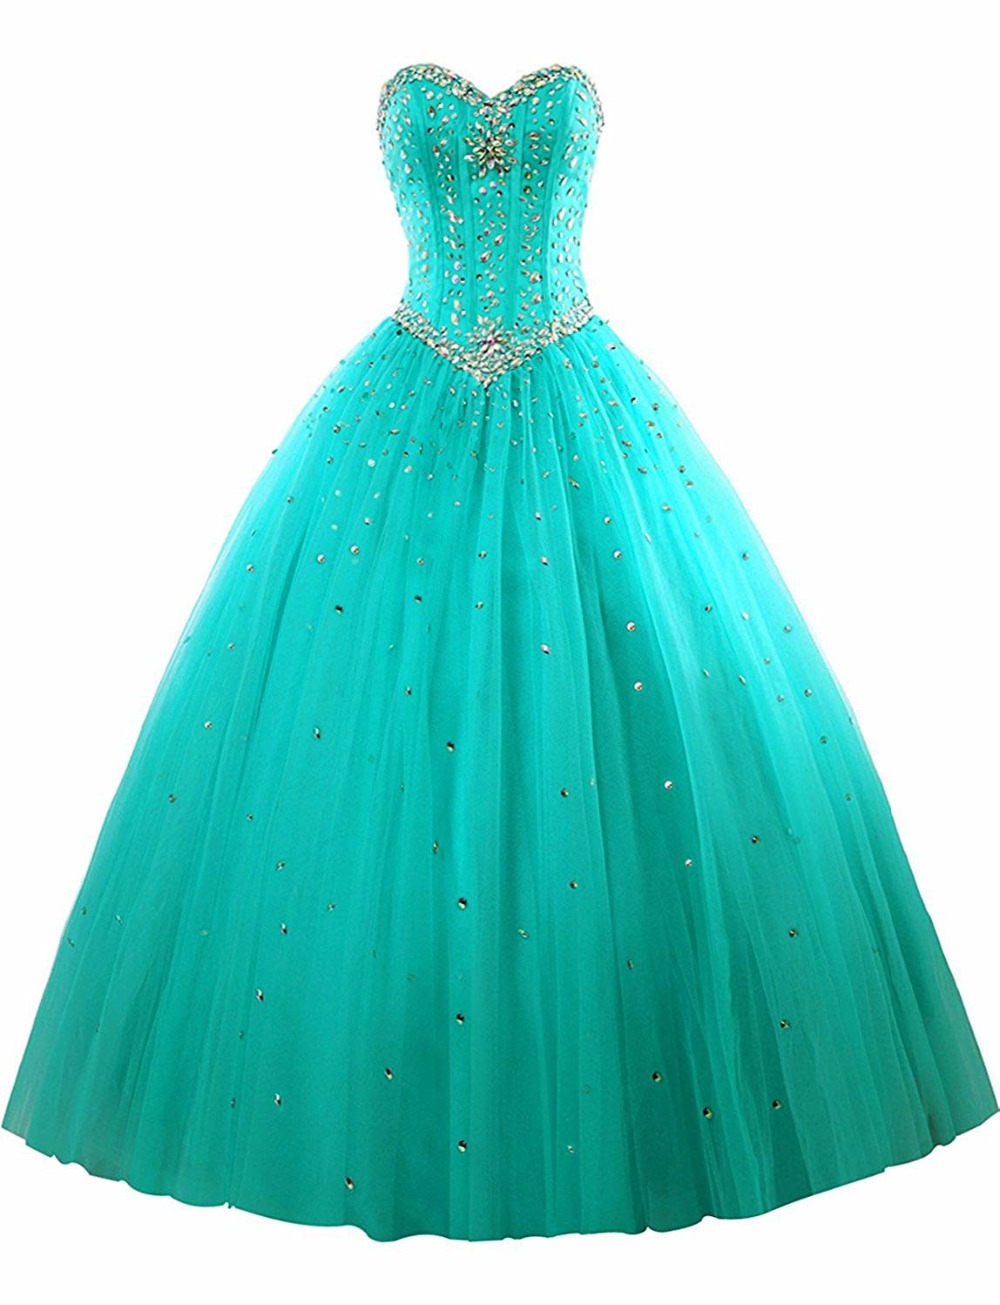 Bealegantom 2019 100% Real Photo Ball Gown Quinceanera Dresses Beaded Lace Up Sweet 16 Dress Vestidos De 15 Anos QA1549